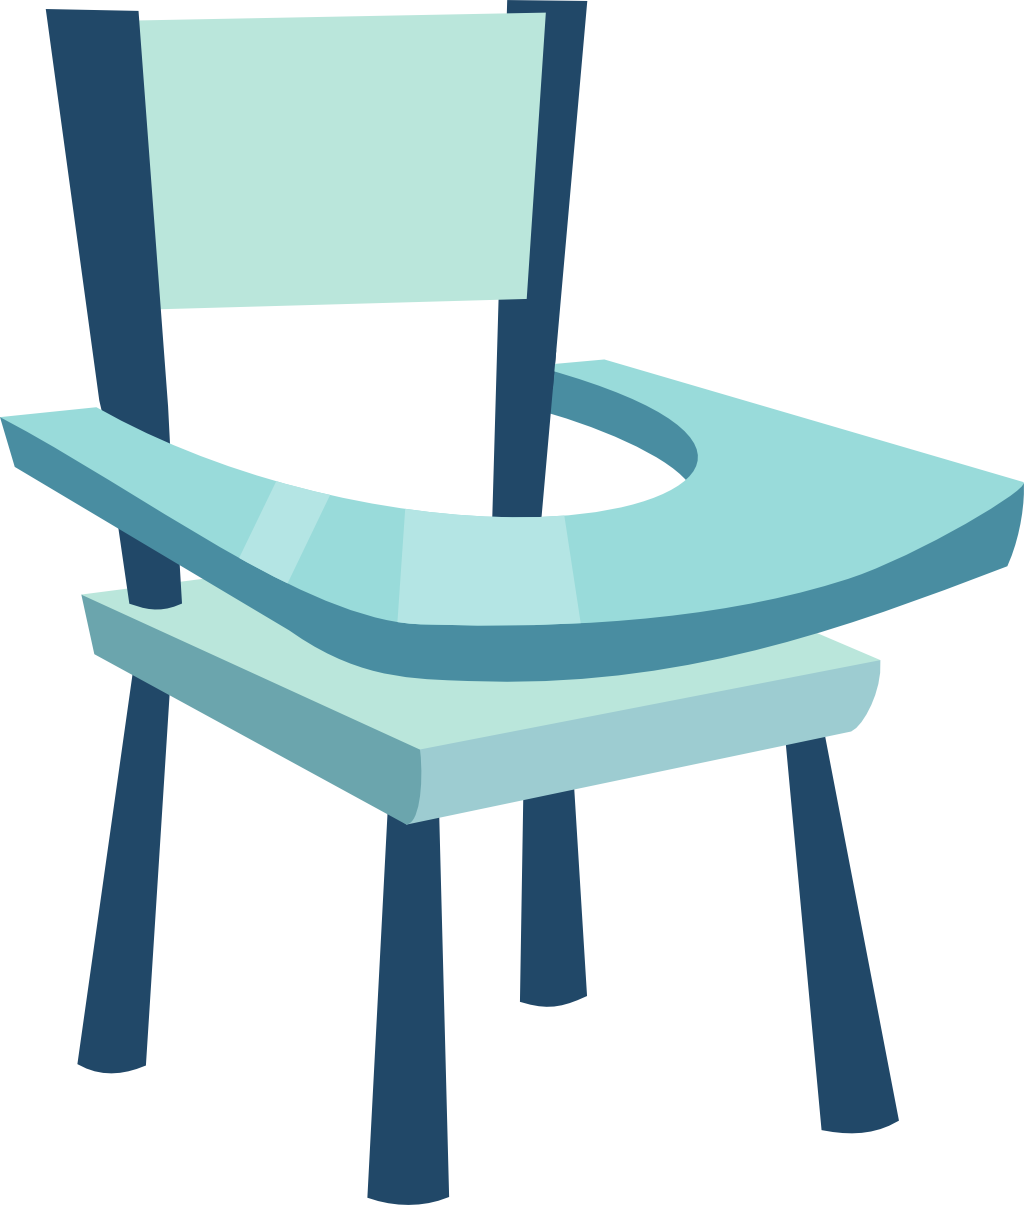 Baby by limedreaming on. Clipart chair dining room chair